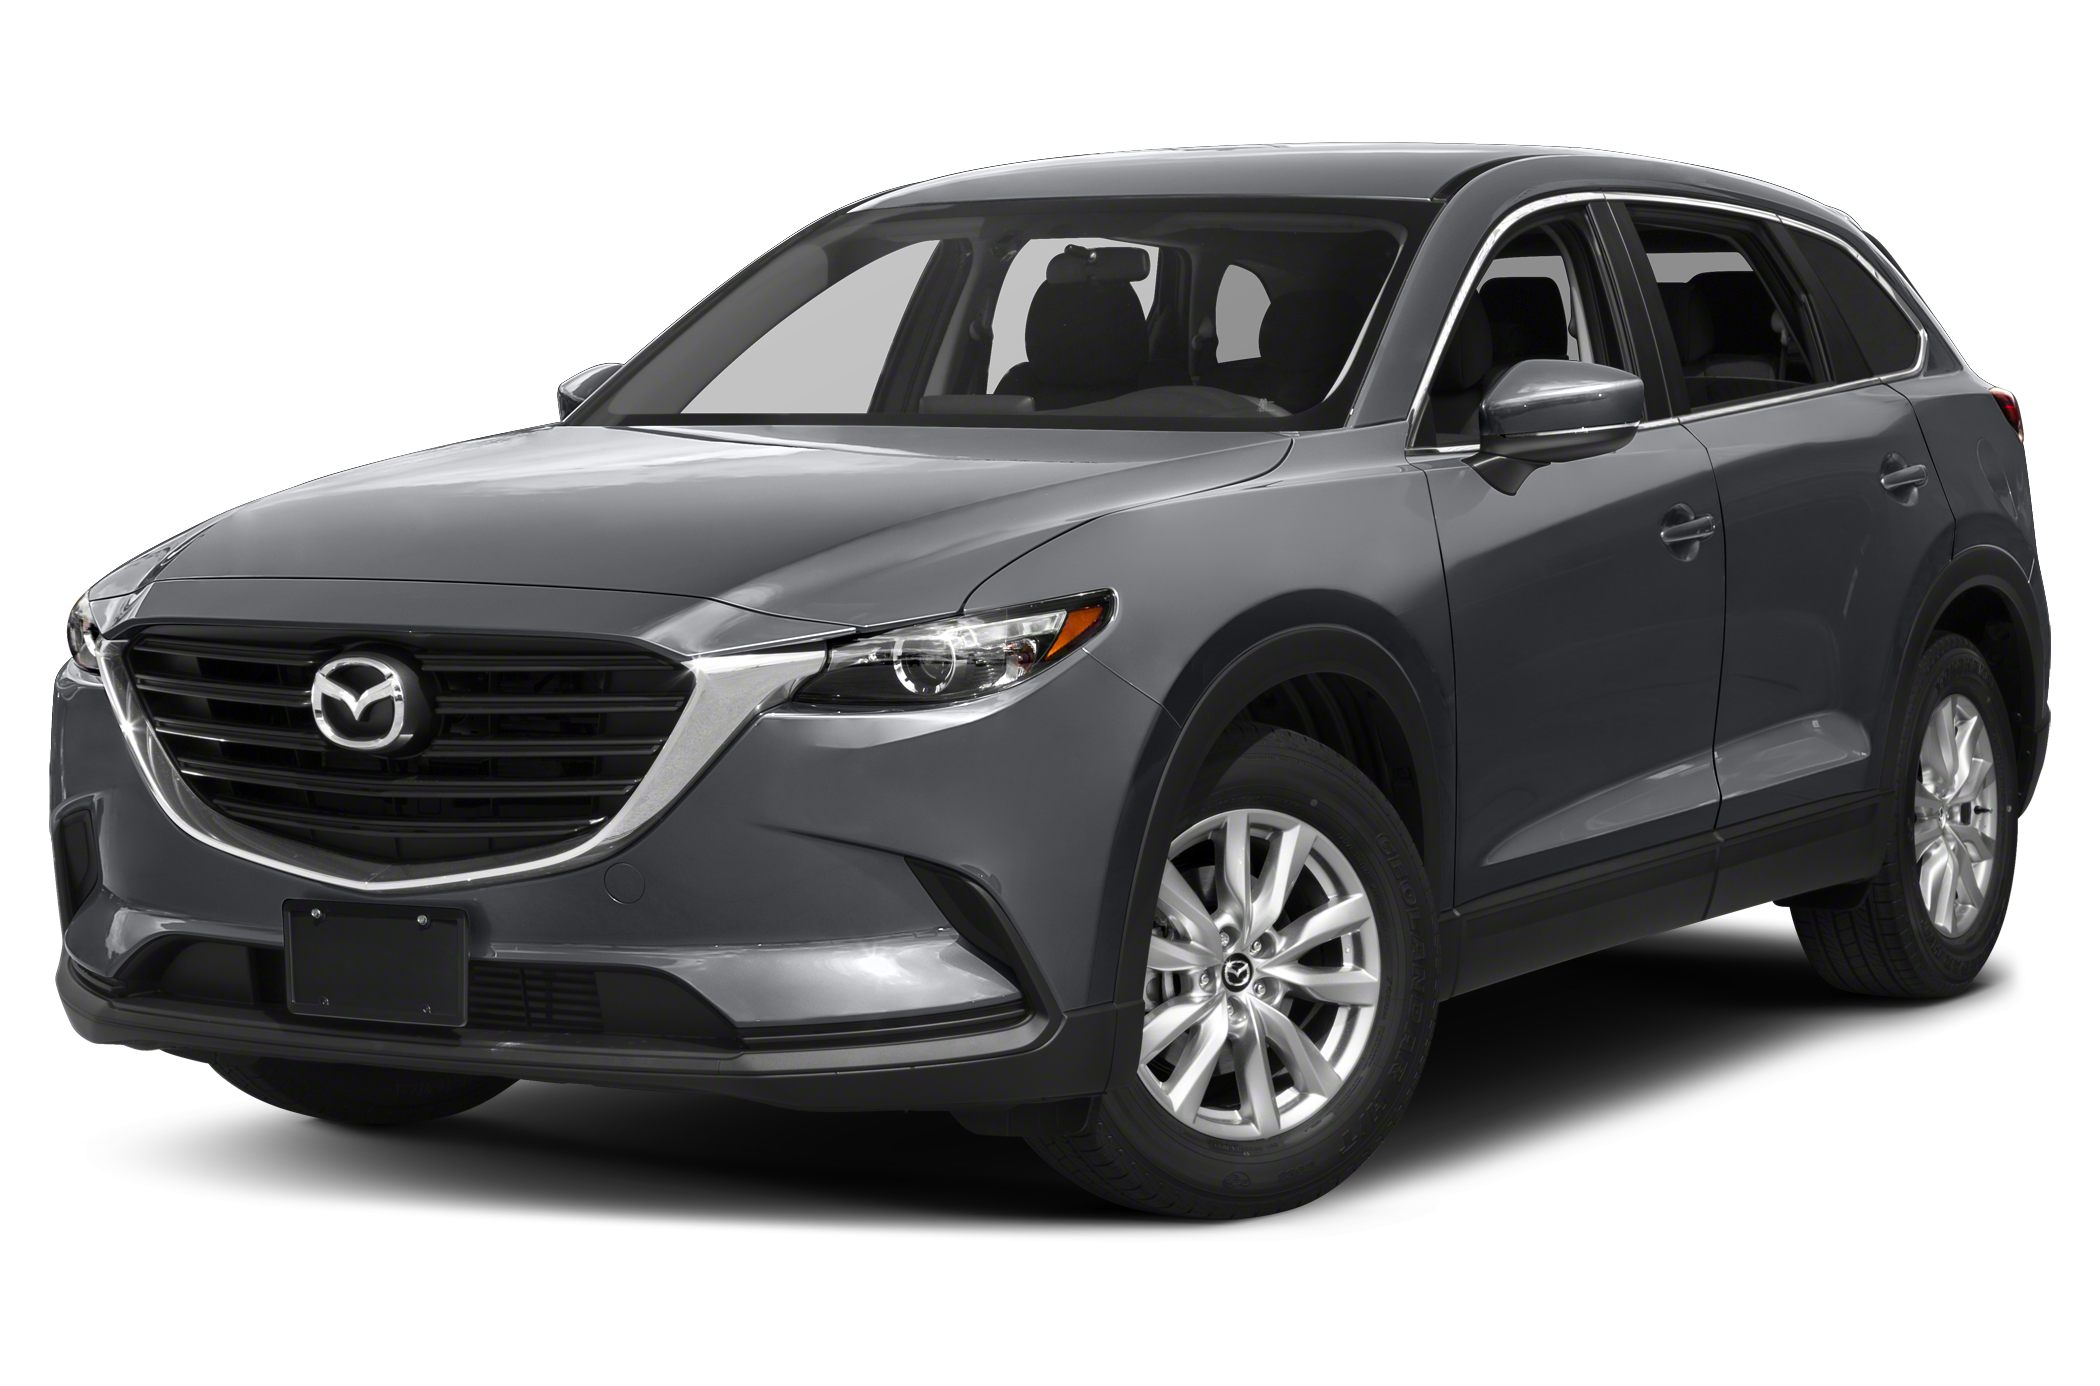 Mazda Cx 9 Overview Amp Generations Carsdirect